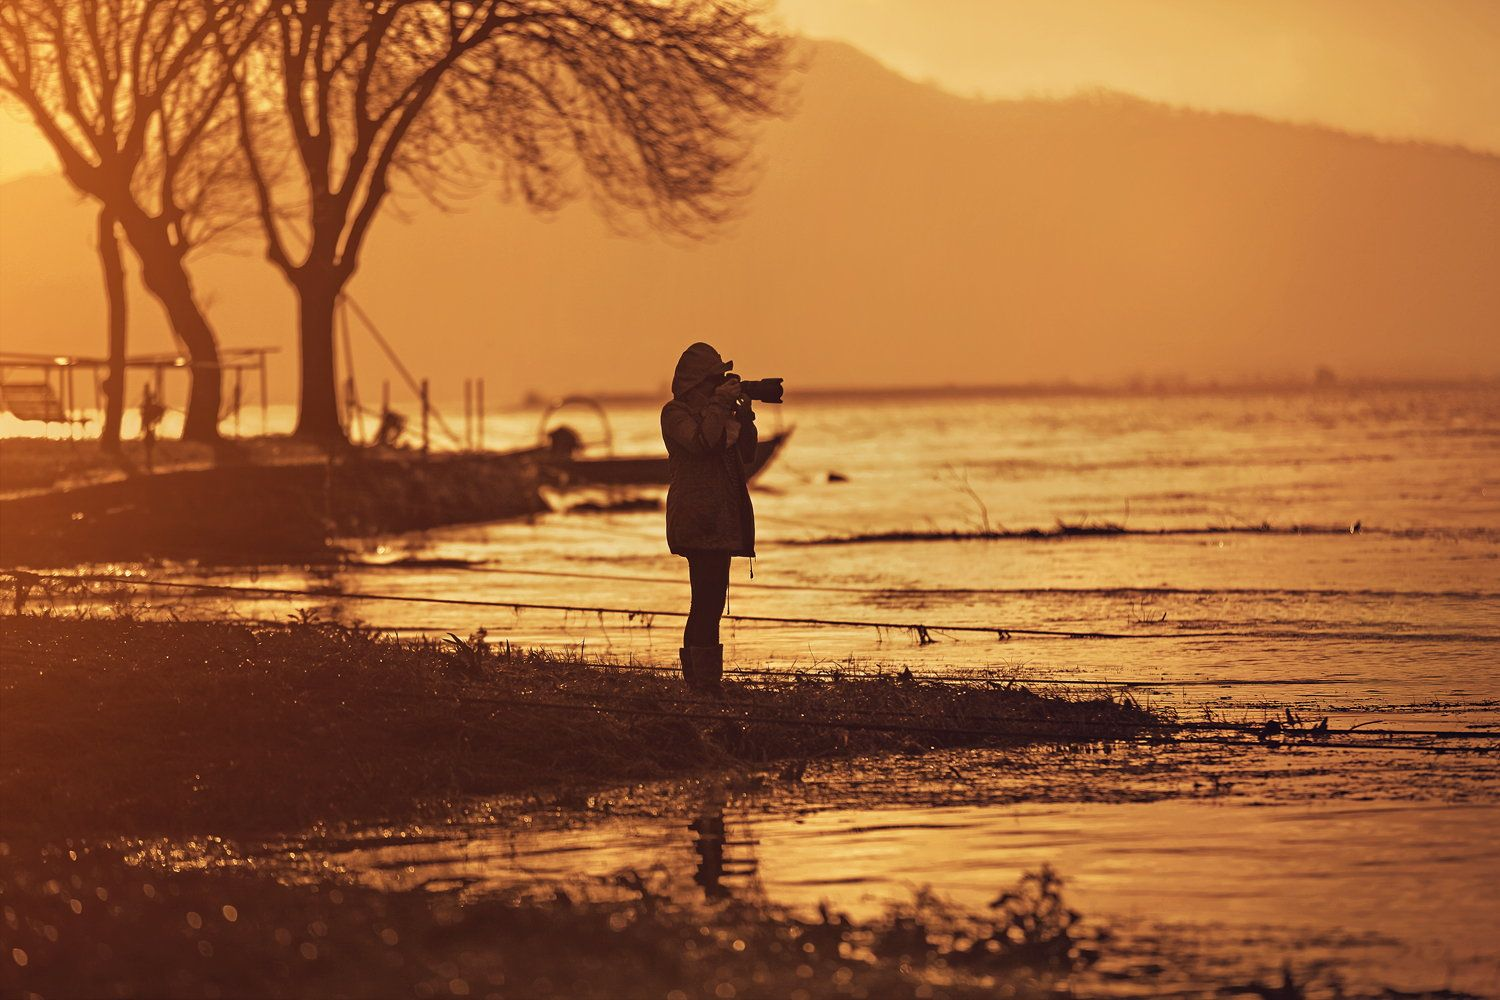 Love Photography by Luis Valadares on 500px